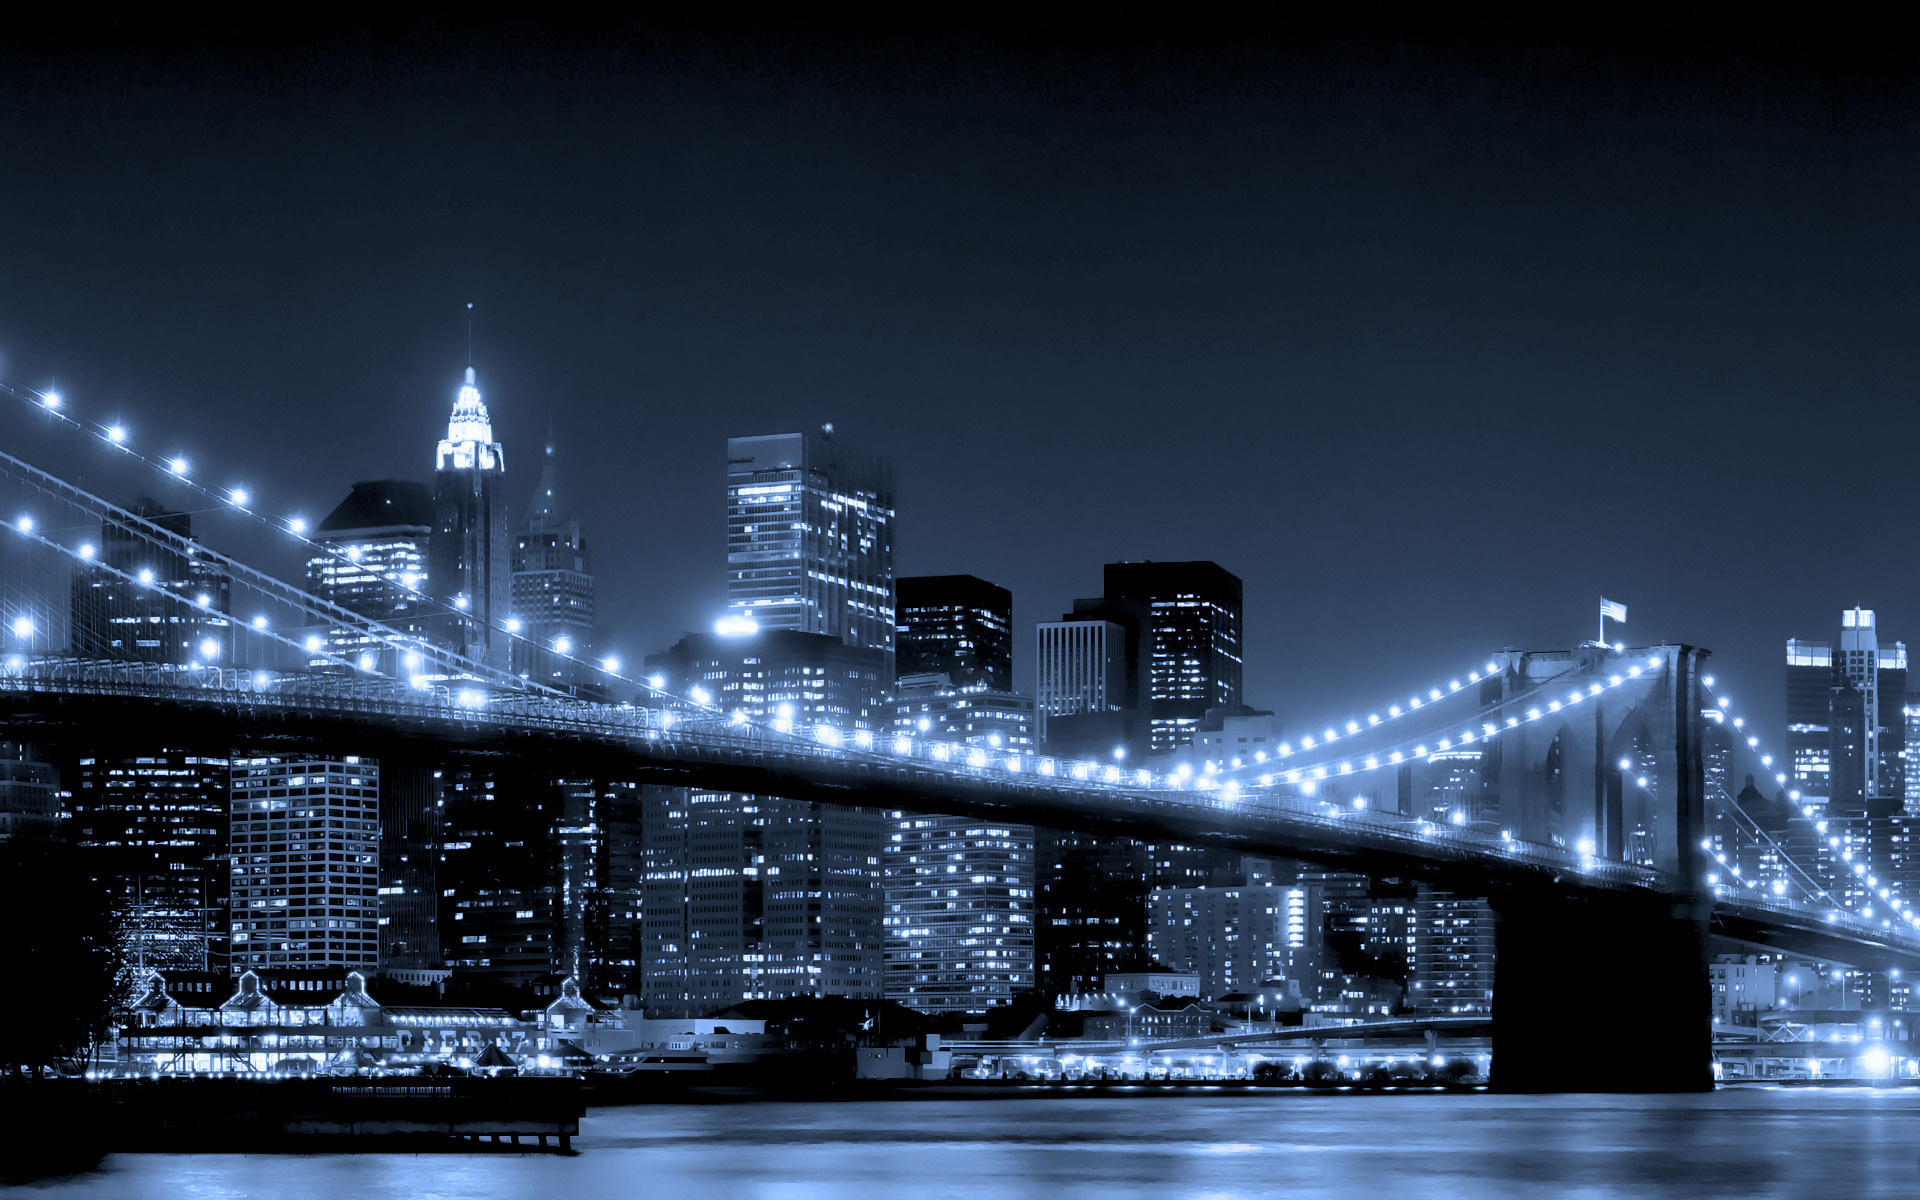 Brooklyn-Bridge-Wallpaper-night-lights-the-river-desktop1.jpg